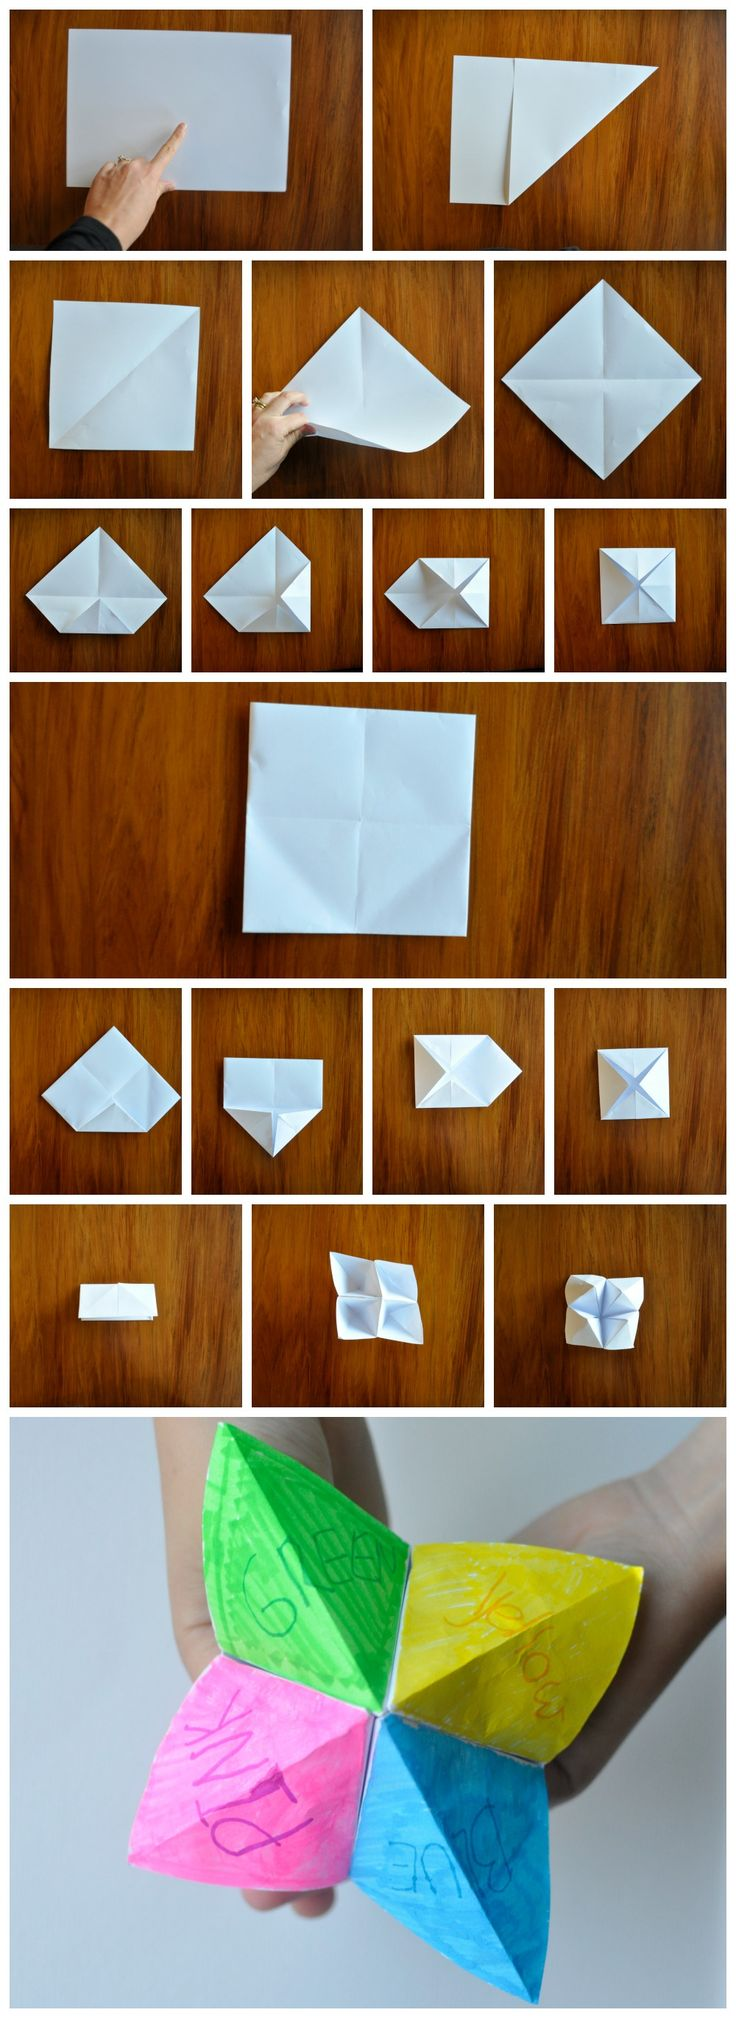 How To Make A Chatterbox Such A Classic Game You Can